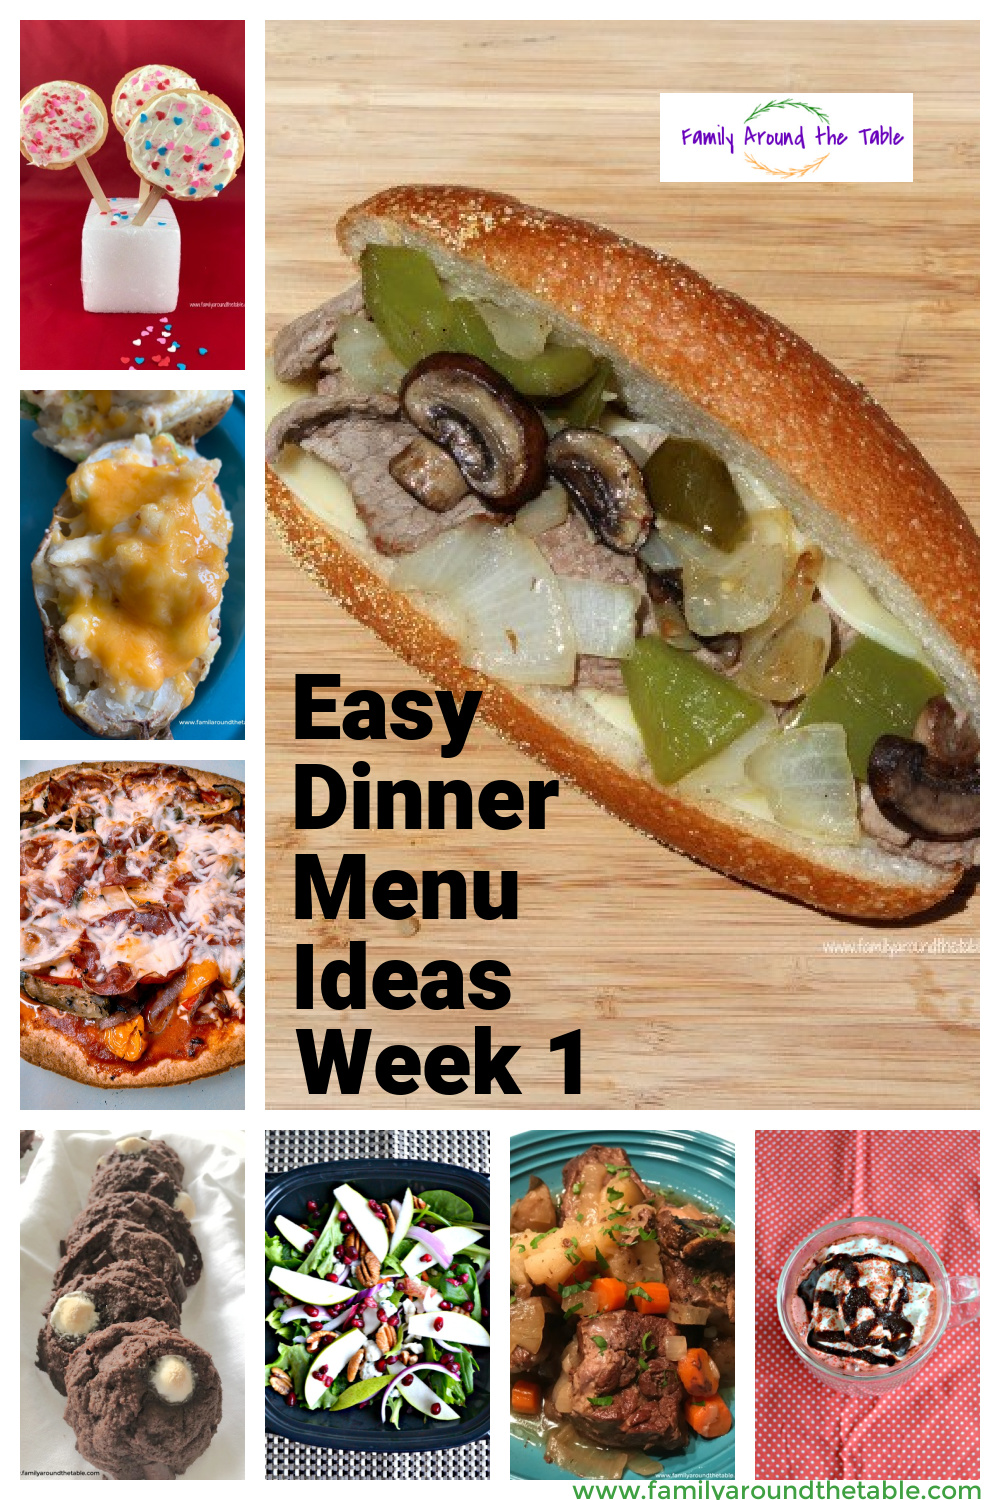 Easy Dinner Menu Ideas collage of photos.